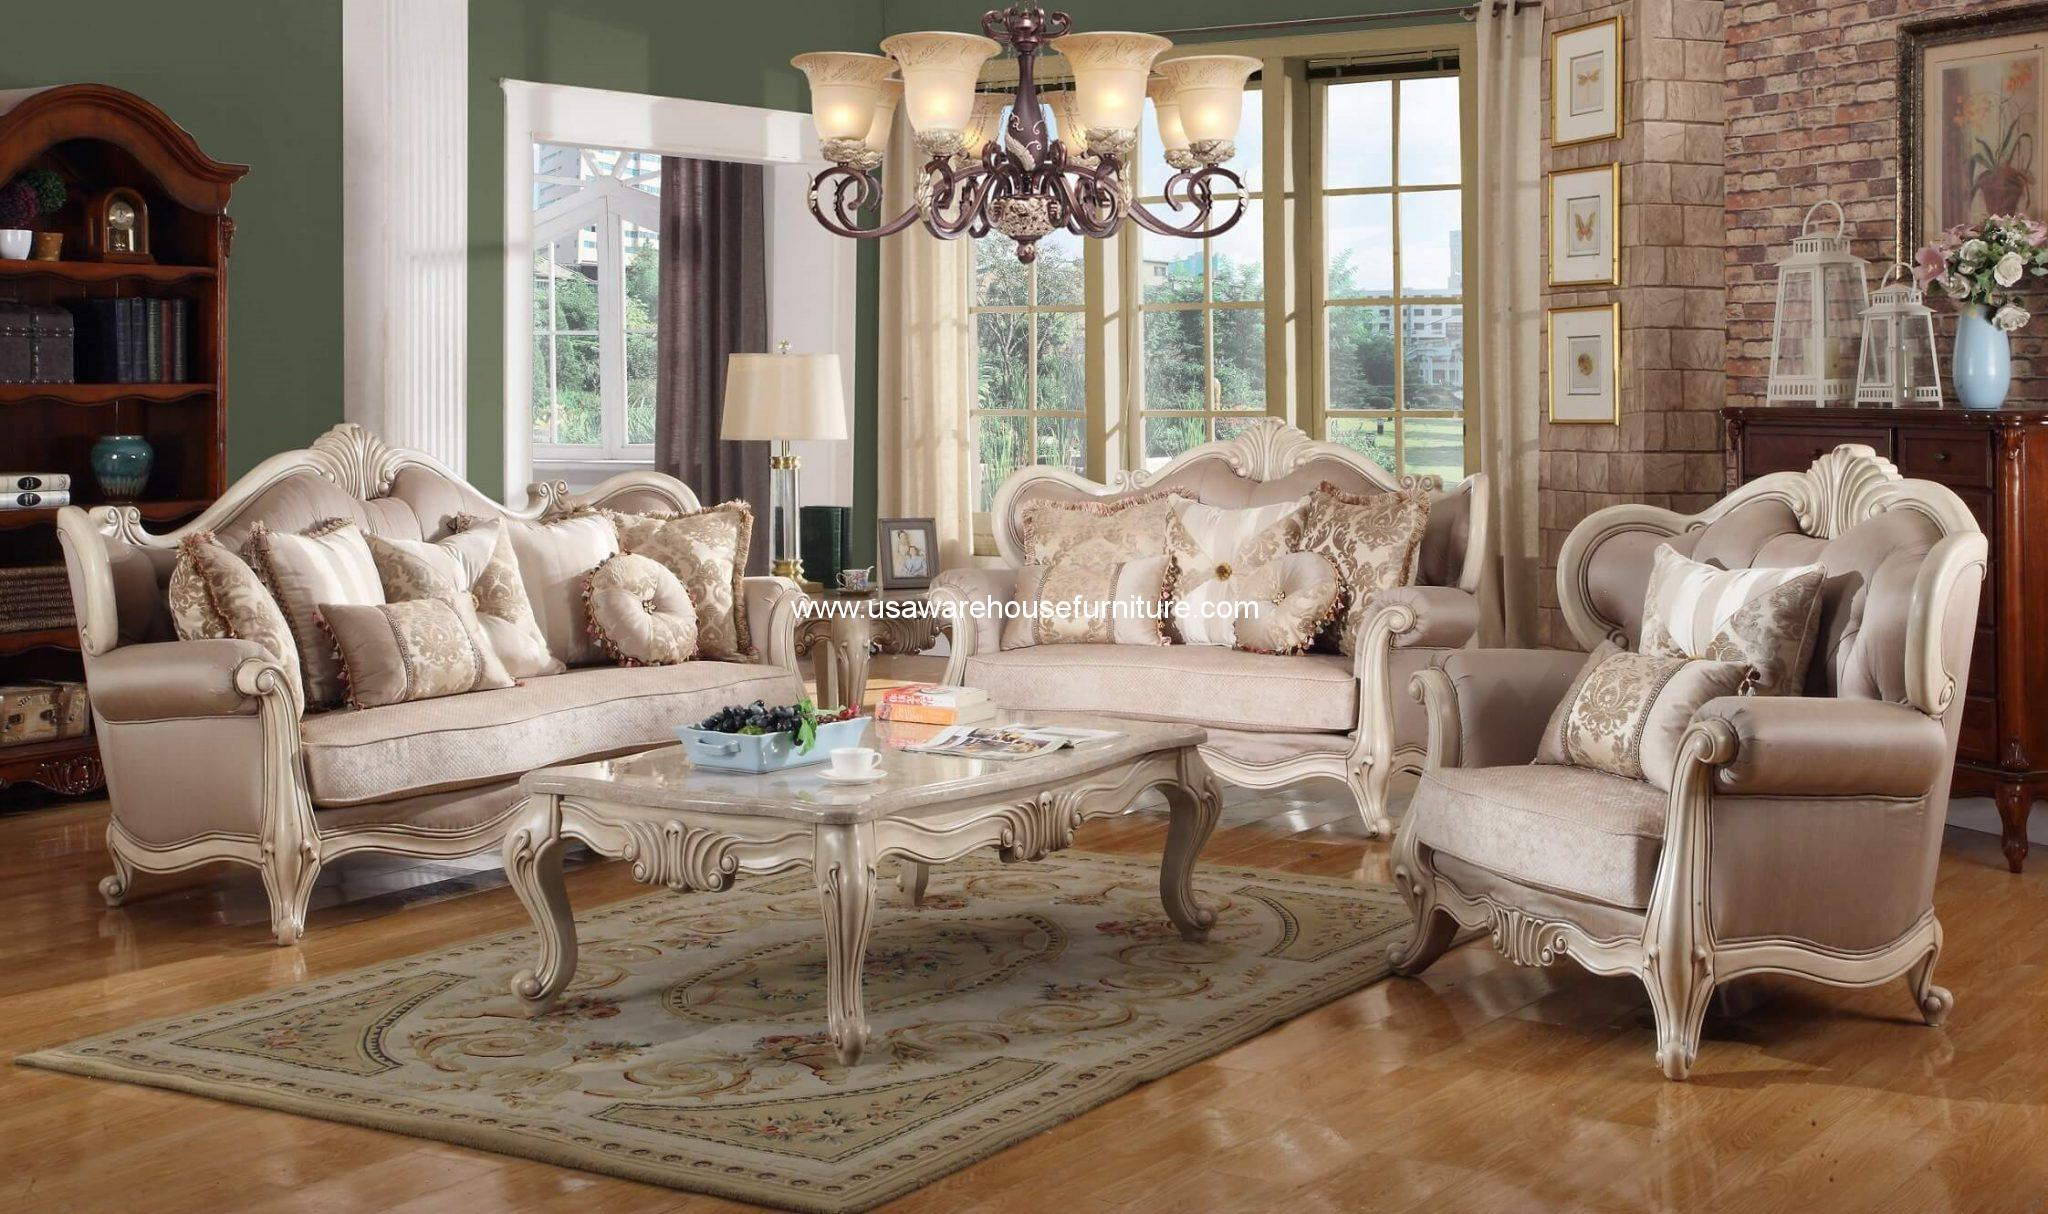 Mcferran Furniture Sf8701 Natalie European Sofa Set Antique Beige on Antique Living Room Furniture Sets